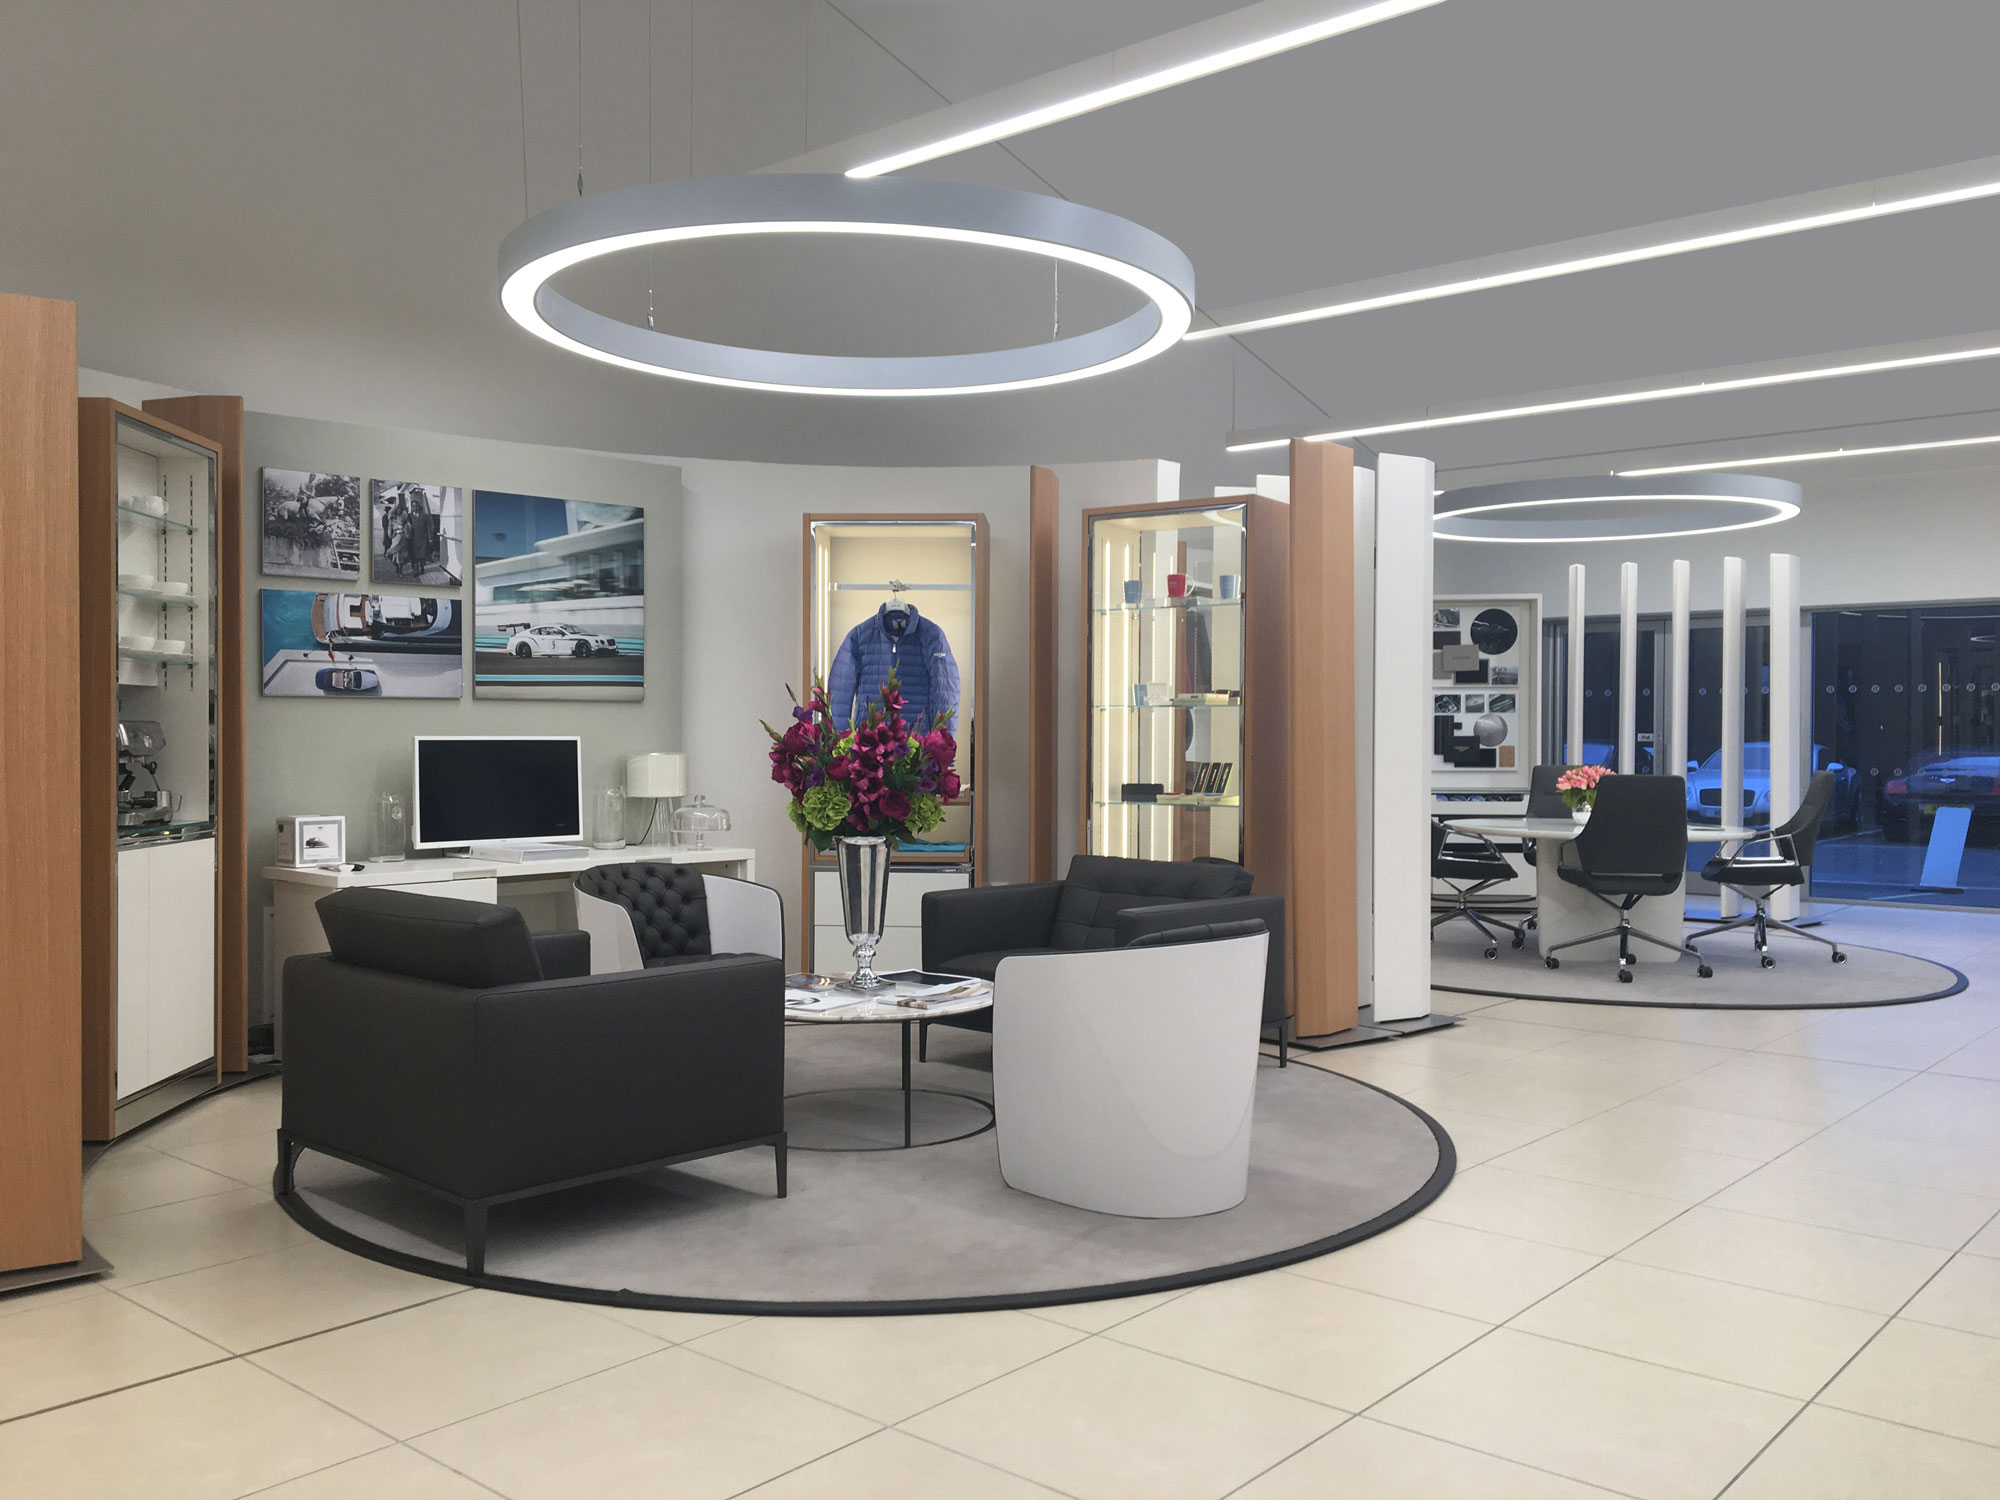 14-Bently-Chelmsford-Customer-Lounge.jpg